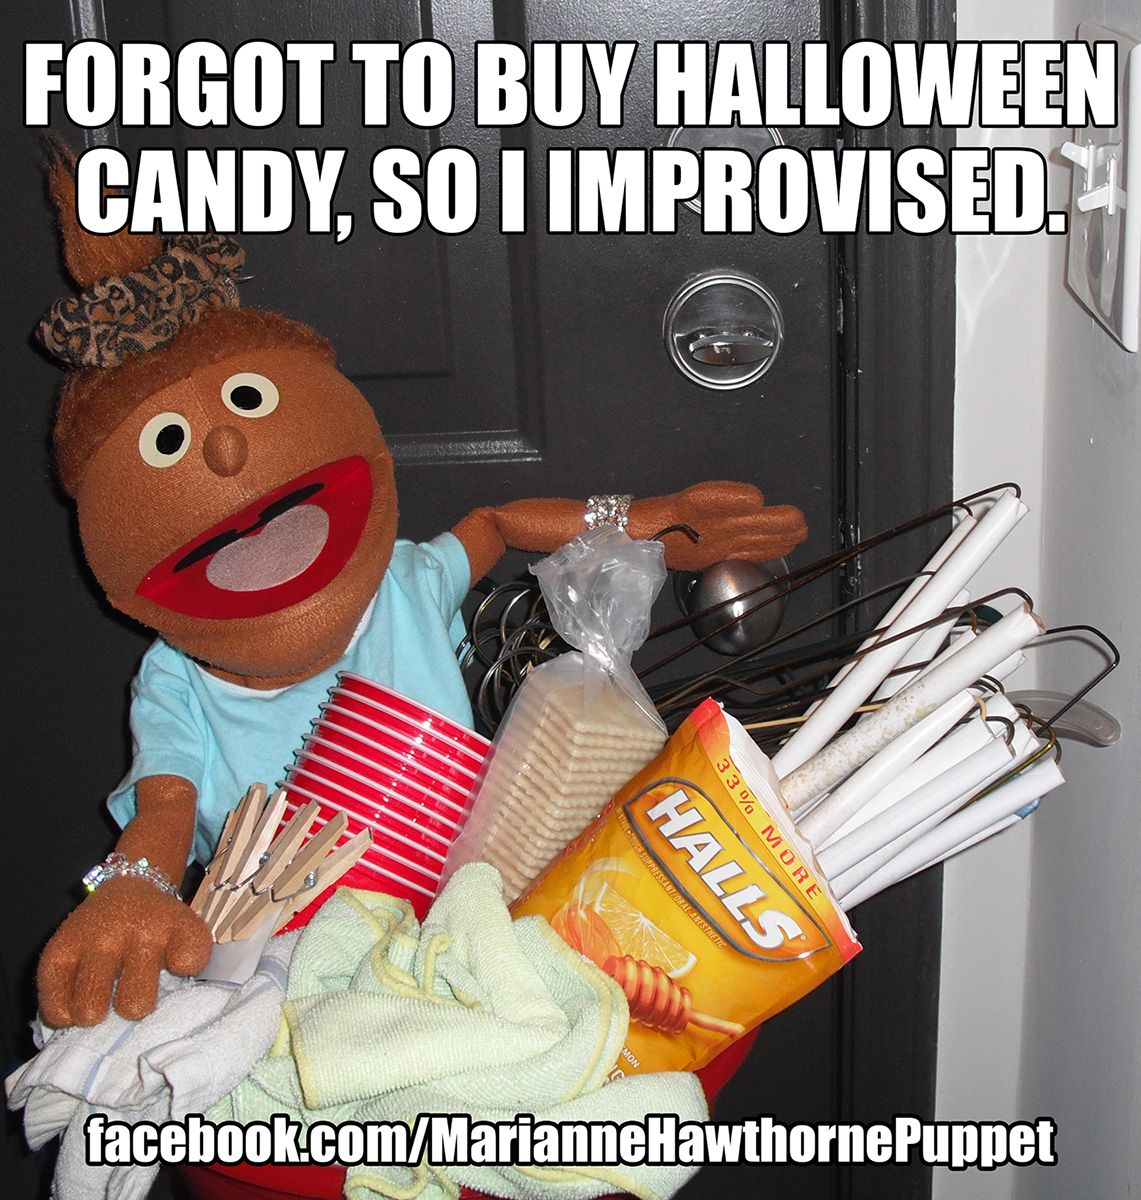 Halloween Meme Candy Trick or Treat Funny Comedy | My Life Mantras ...